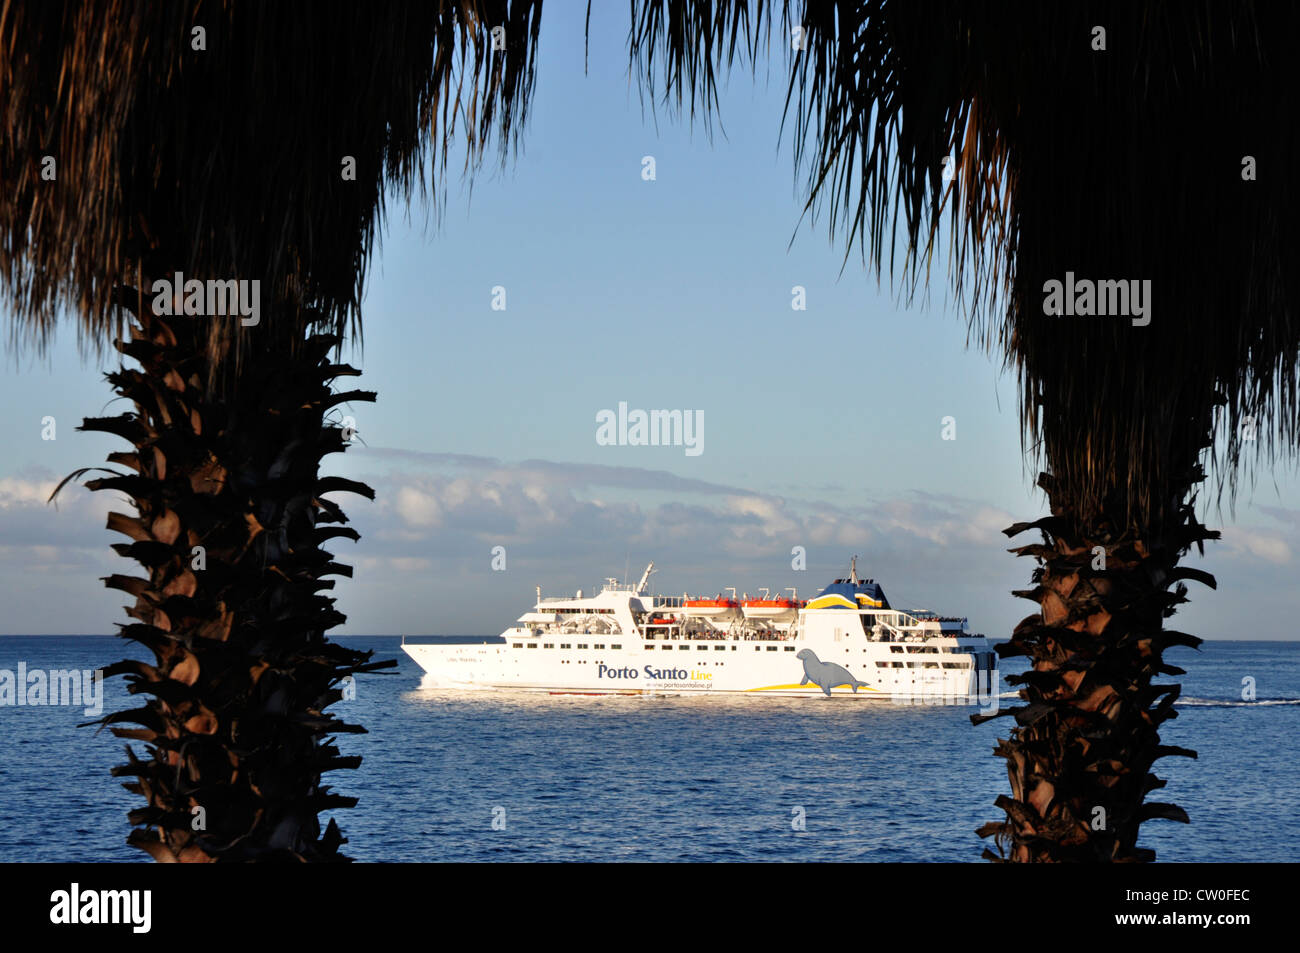 Portugal - Madeira - Funchal - white ferry boat to Porto Santo island - off Madeira - catching early sunlight  framed - Stock Image